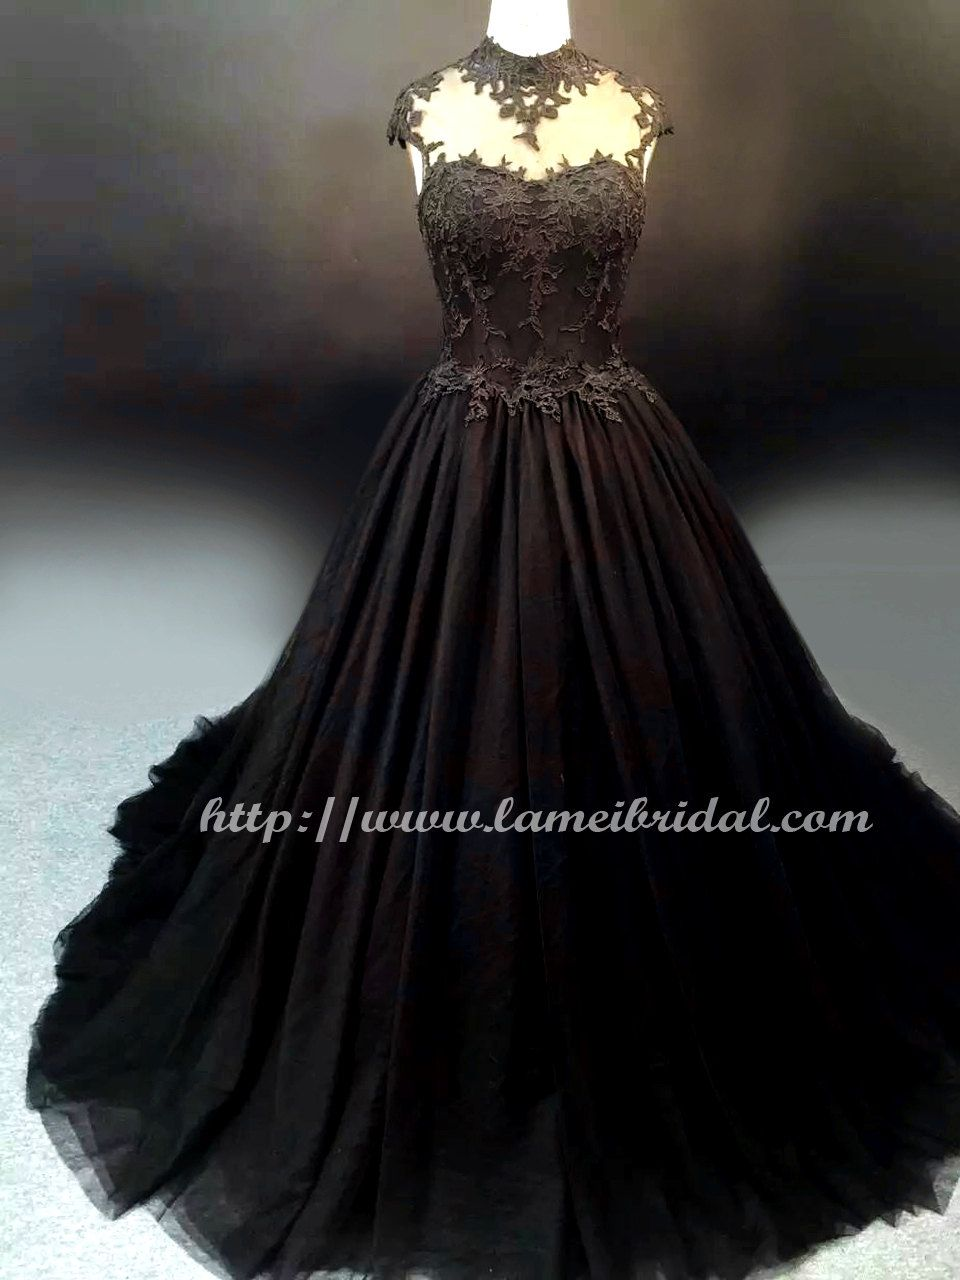 Goth style black lace high neck wedding bridal dress ball gown